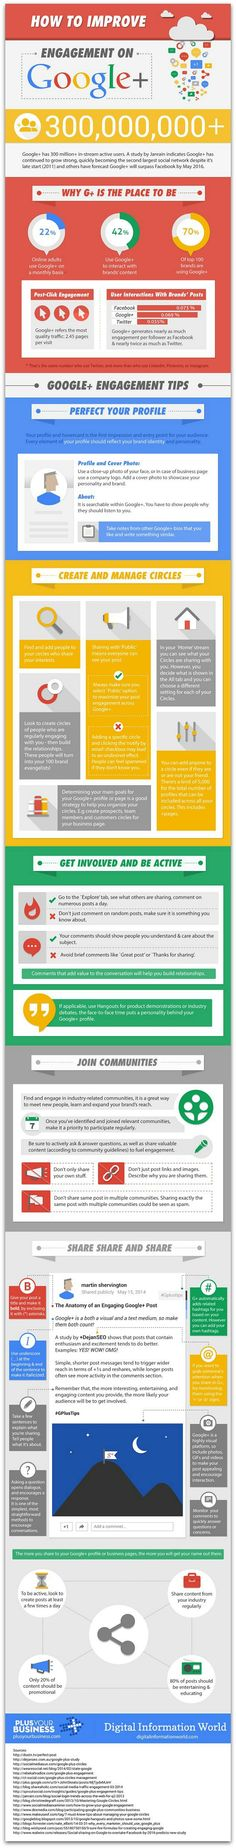 5 ways to increase engagement on Google+ #Infographic | via #BornToBeSocial - Pinterest Marketing